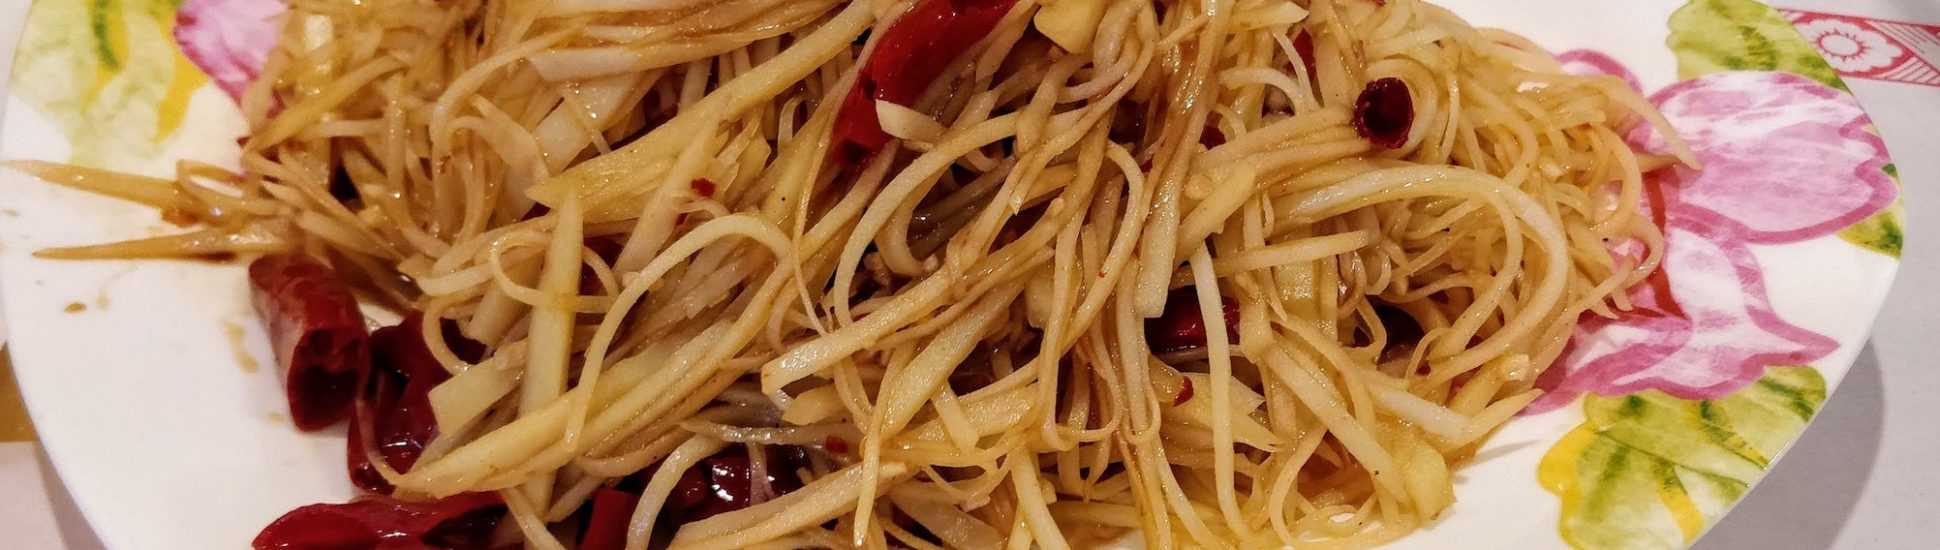 Vegan MoFo – Spicy and Sour Shredded Potatoes (Tu Do Si)